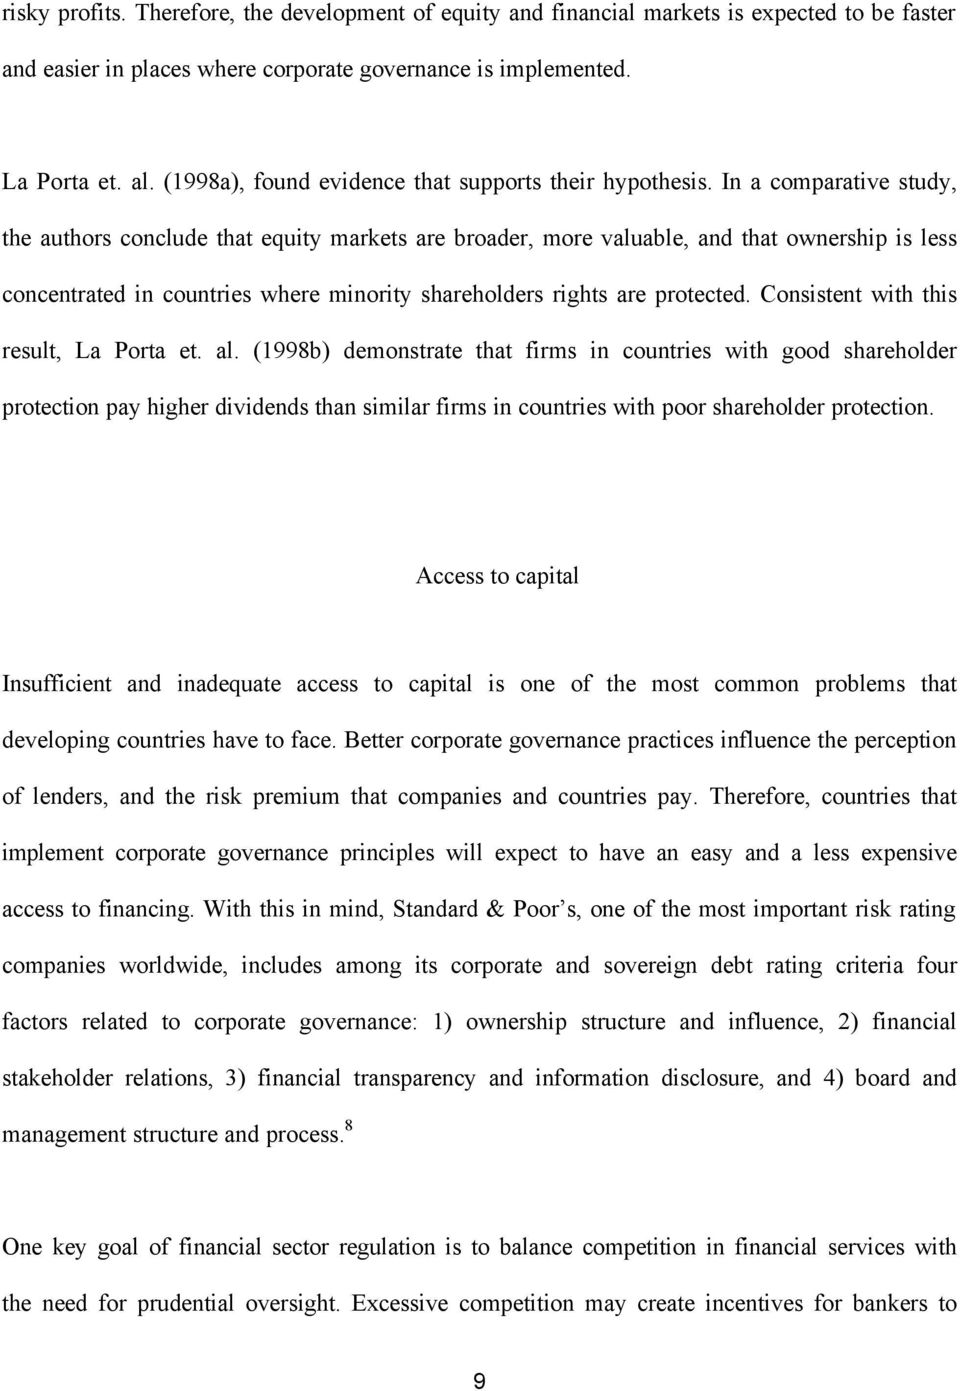 In a comparative study, the authors conclude that equity markets are broader, more valuable, and that ownership is less concentrated in countries where minority shareholders rights are protected.